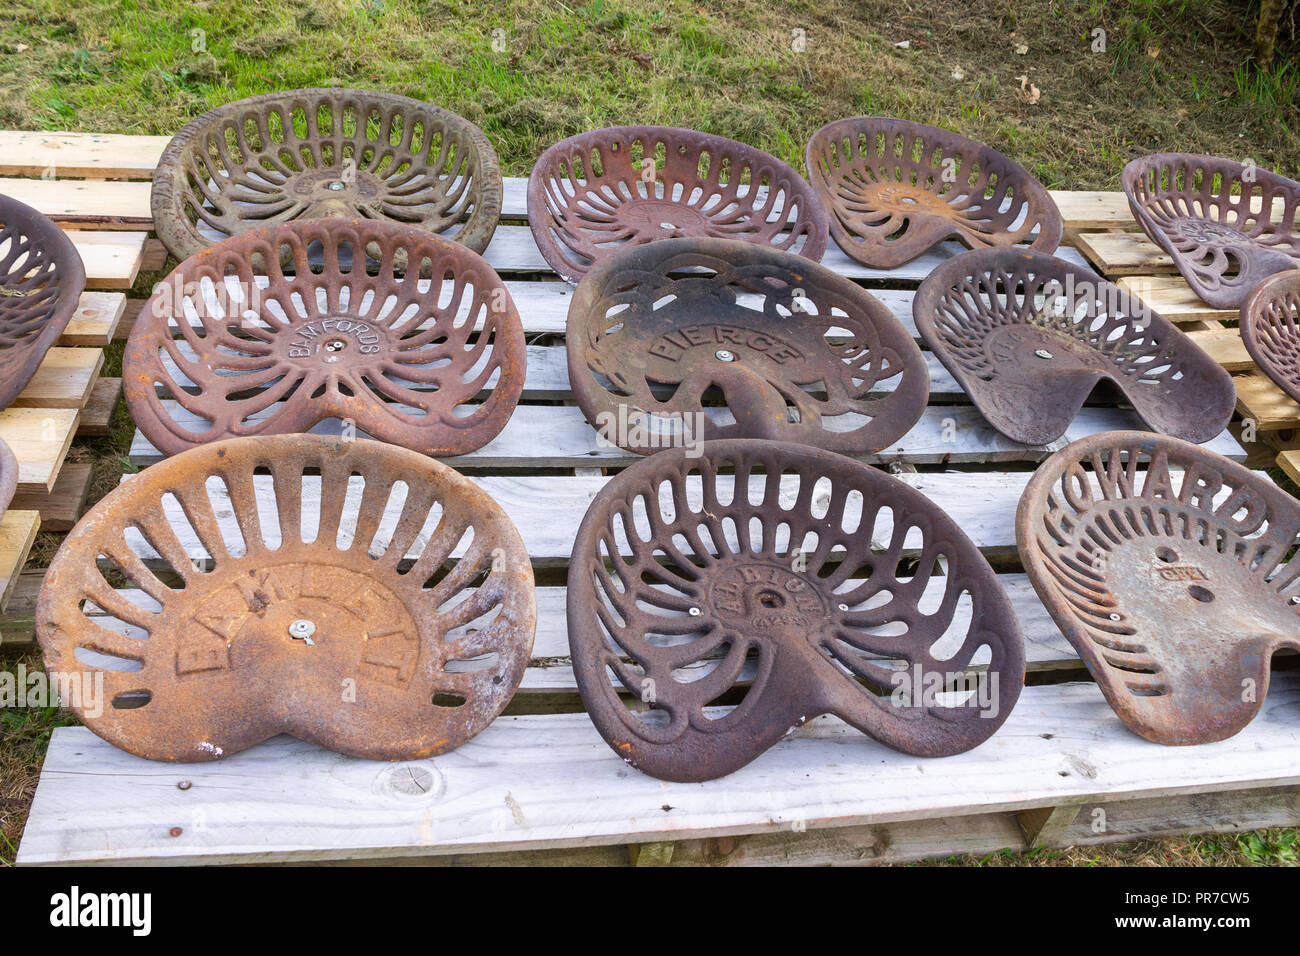 Tractor Seats Stock Photos & Tractor Seats Stock Images - Alamy